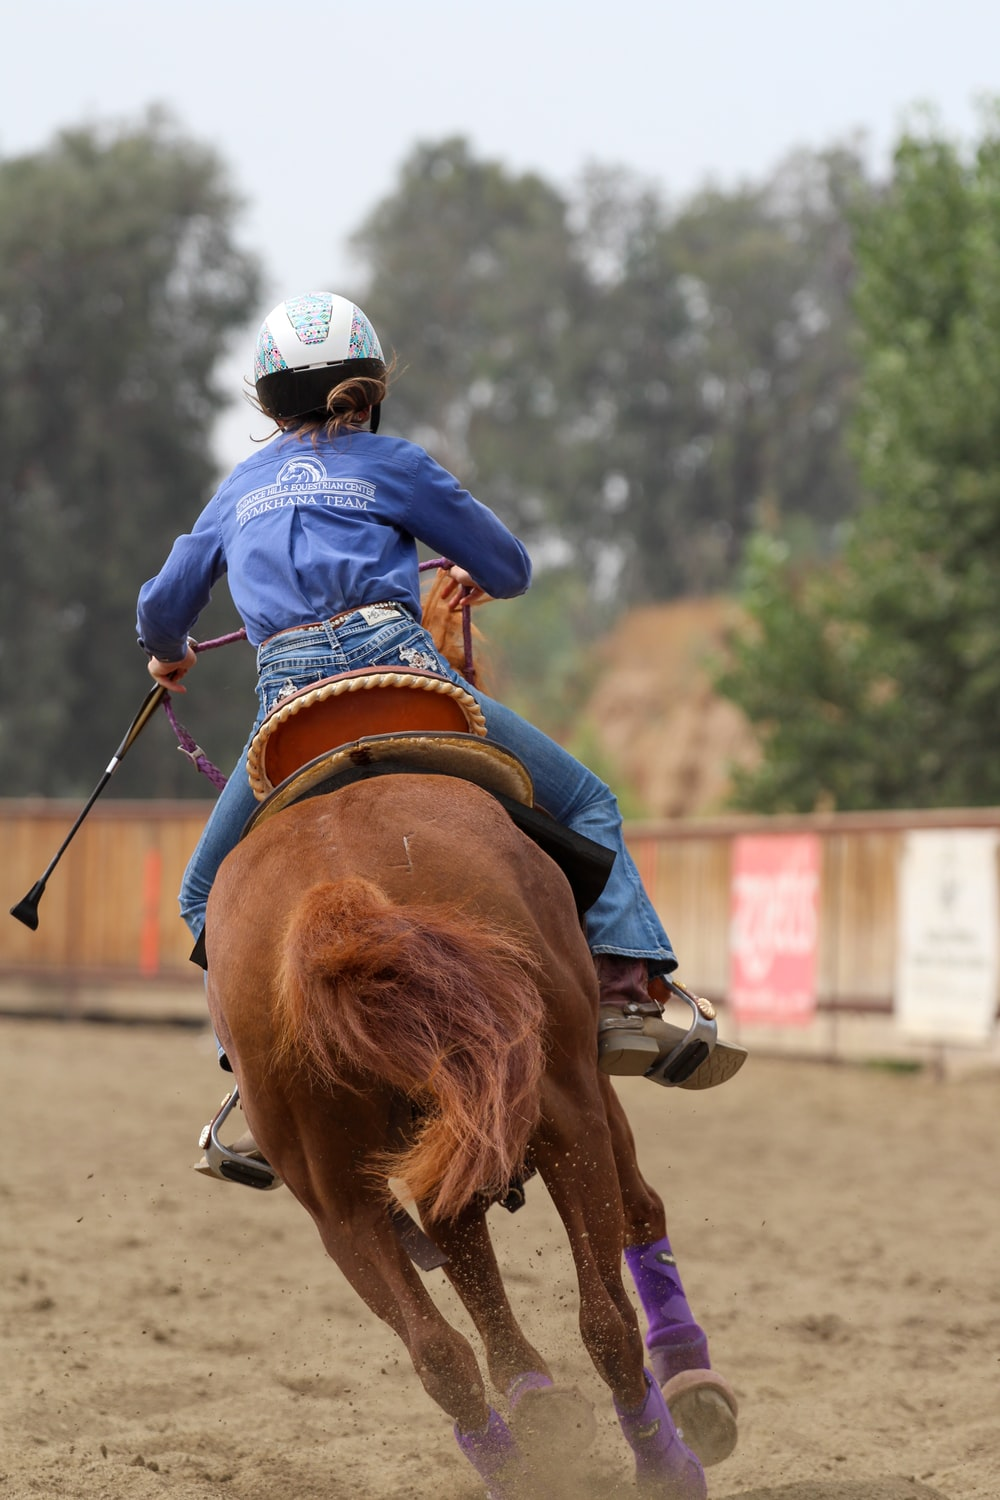 man in blue jacket riding brown horse during daytime